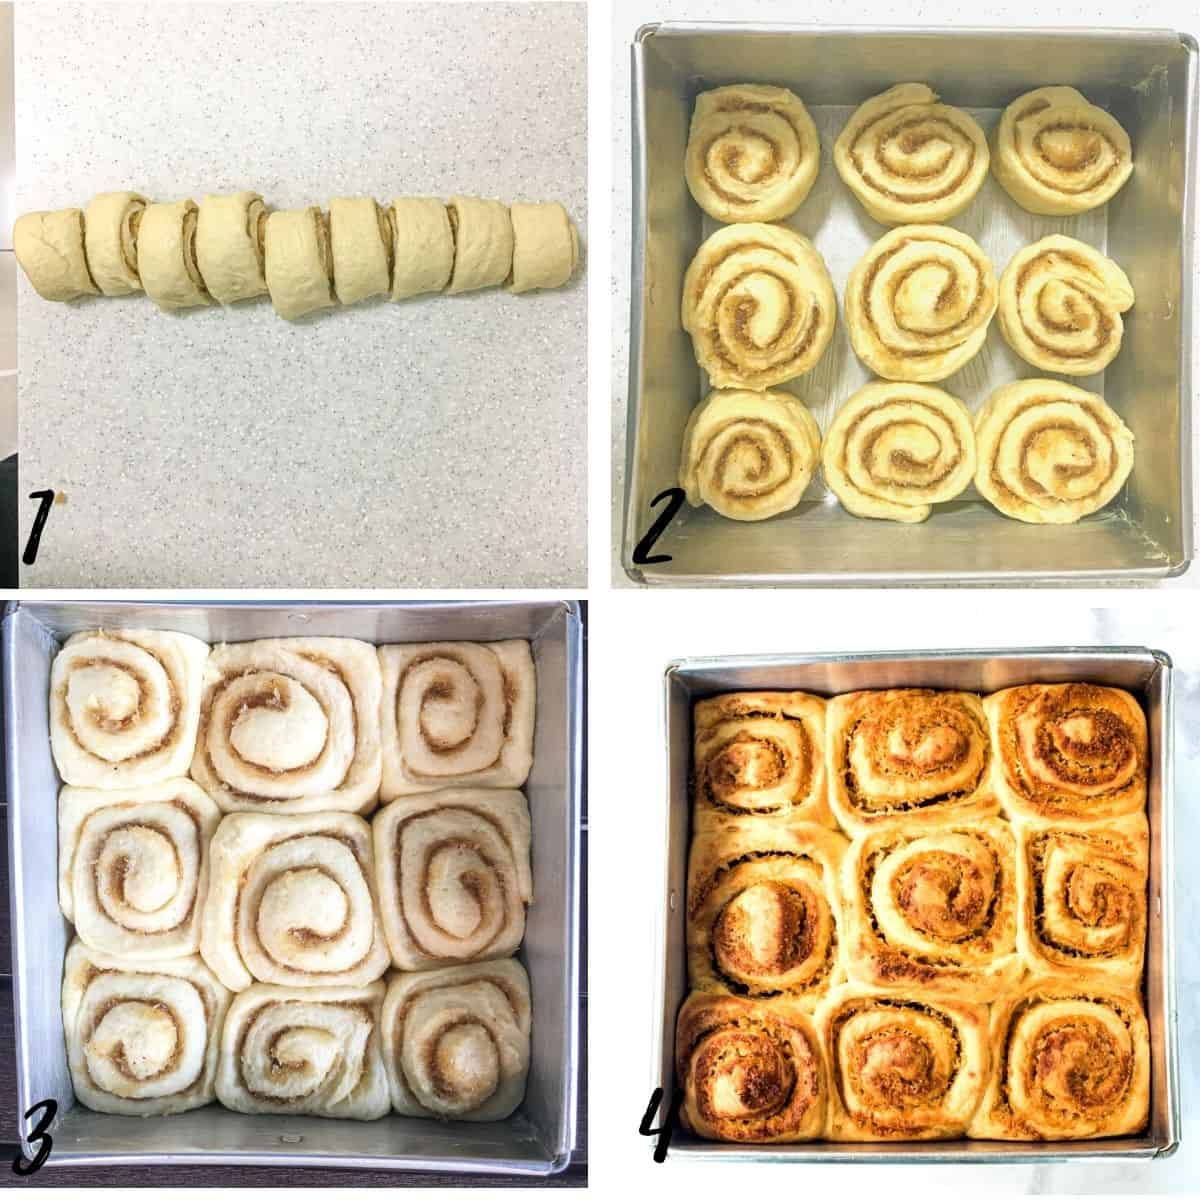 A poster of 4 images showing how to cut, proof and bake coconut rolls